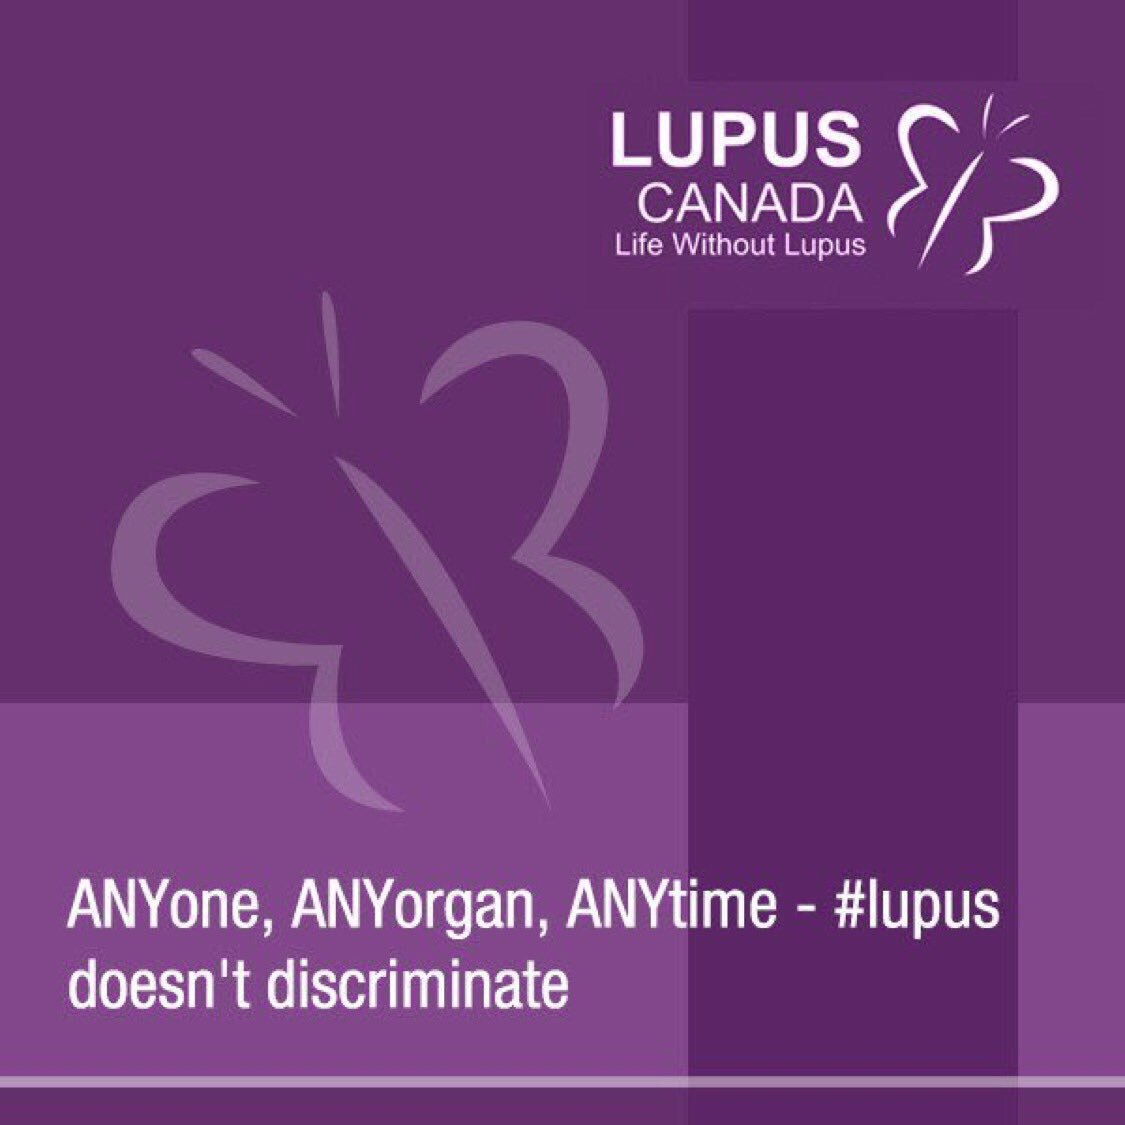 If you have family with #Lupus, @LupusCanada's e-newsletter provides important #Lupus health information, research updates & personal stories. Sign up for your copy of @LupusCanada's e-newsletter today here:  #LupusCanada #LetsTalkLupus